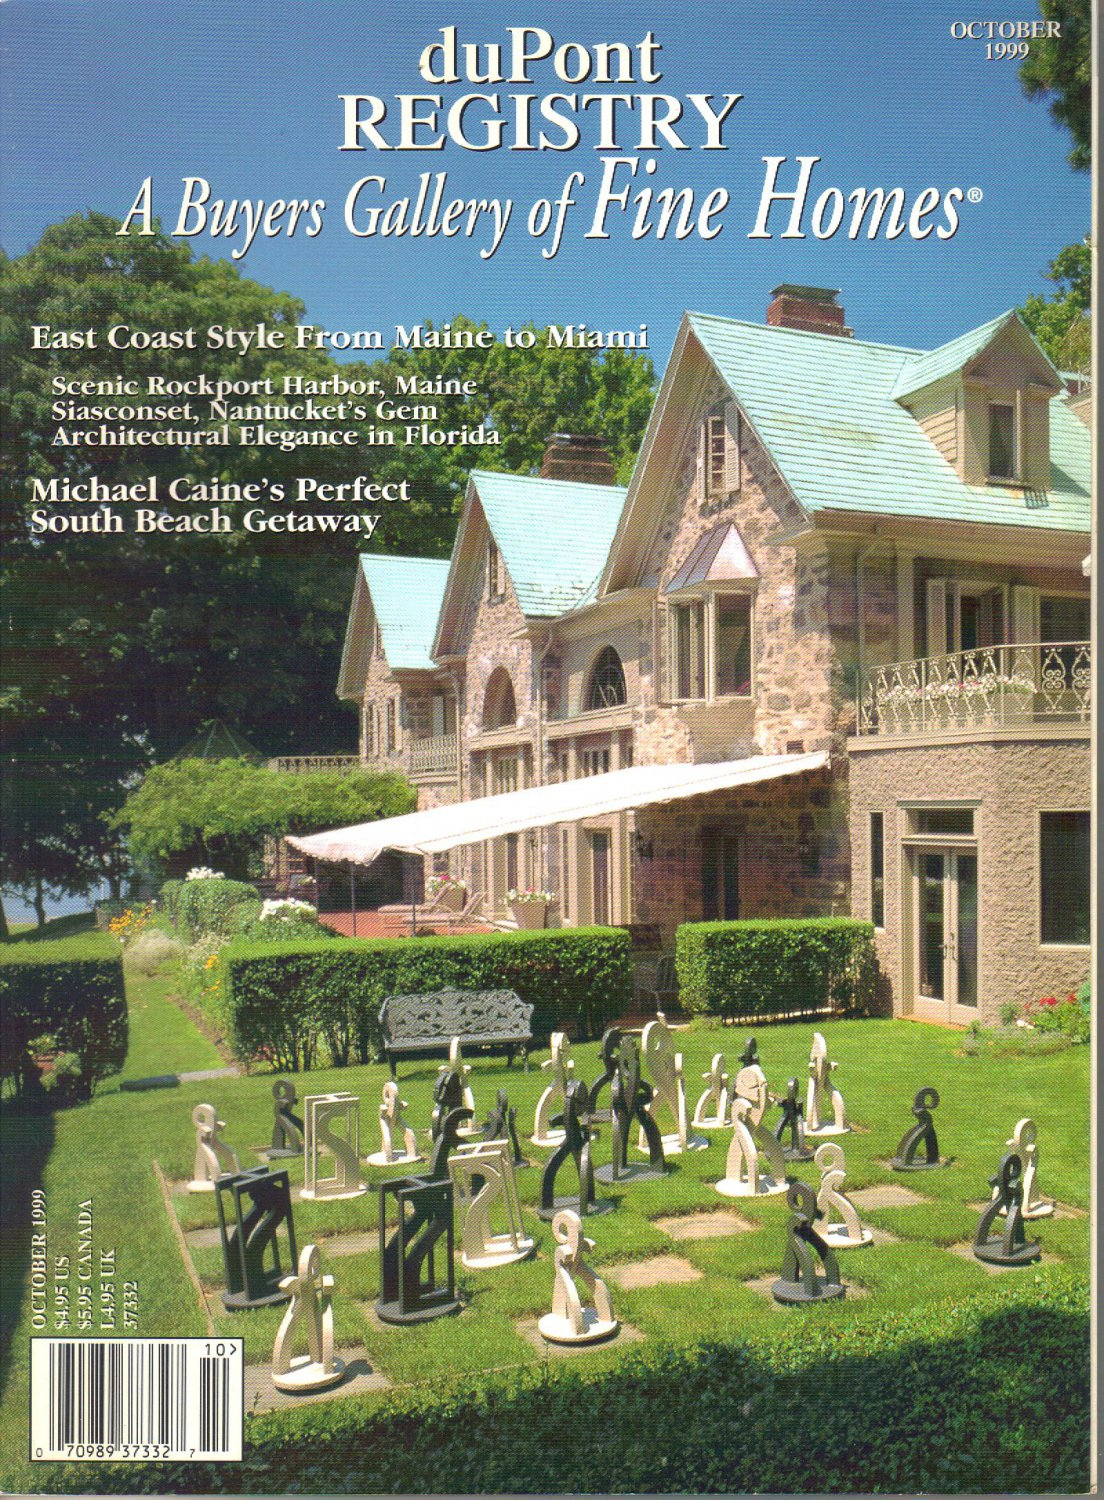 duPont Registry A Buyers Gallery of Fine Homes-October 1999-Whoopi Goldberg-West Cornwall